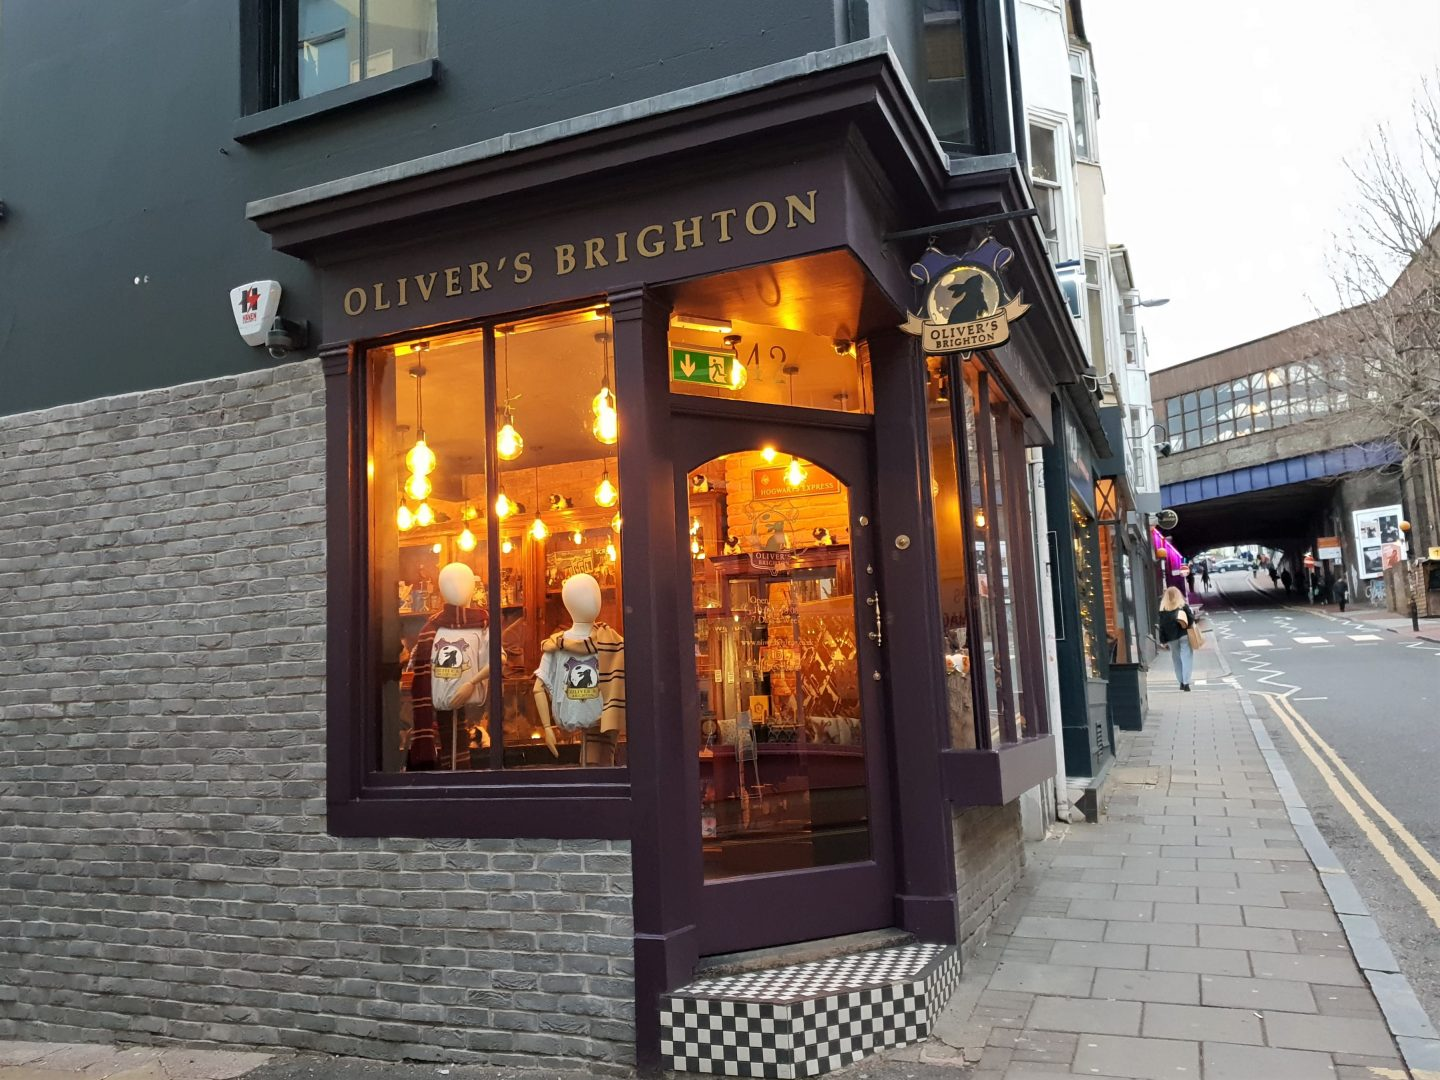 Oliver's Harry Potter shop front in Brighton - purple paint with old fashioned sign writing, a checkered step and inviting warm lights within